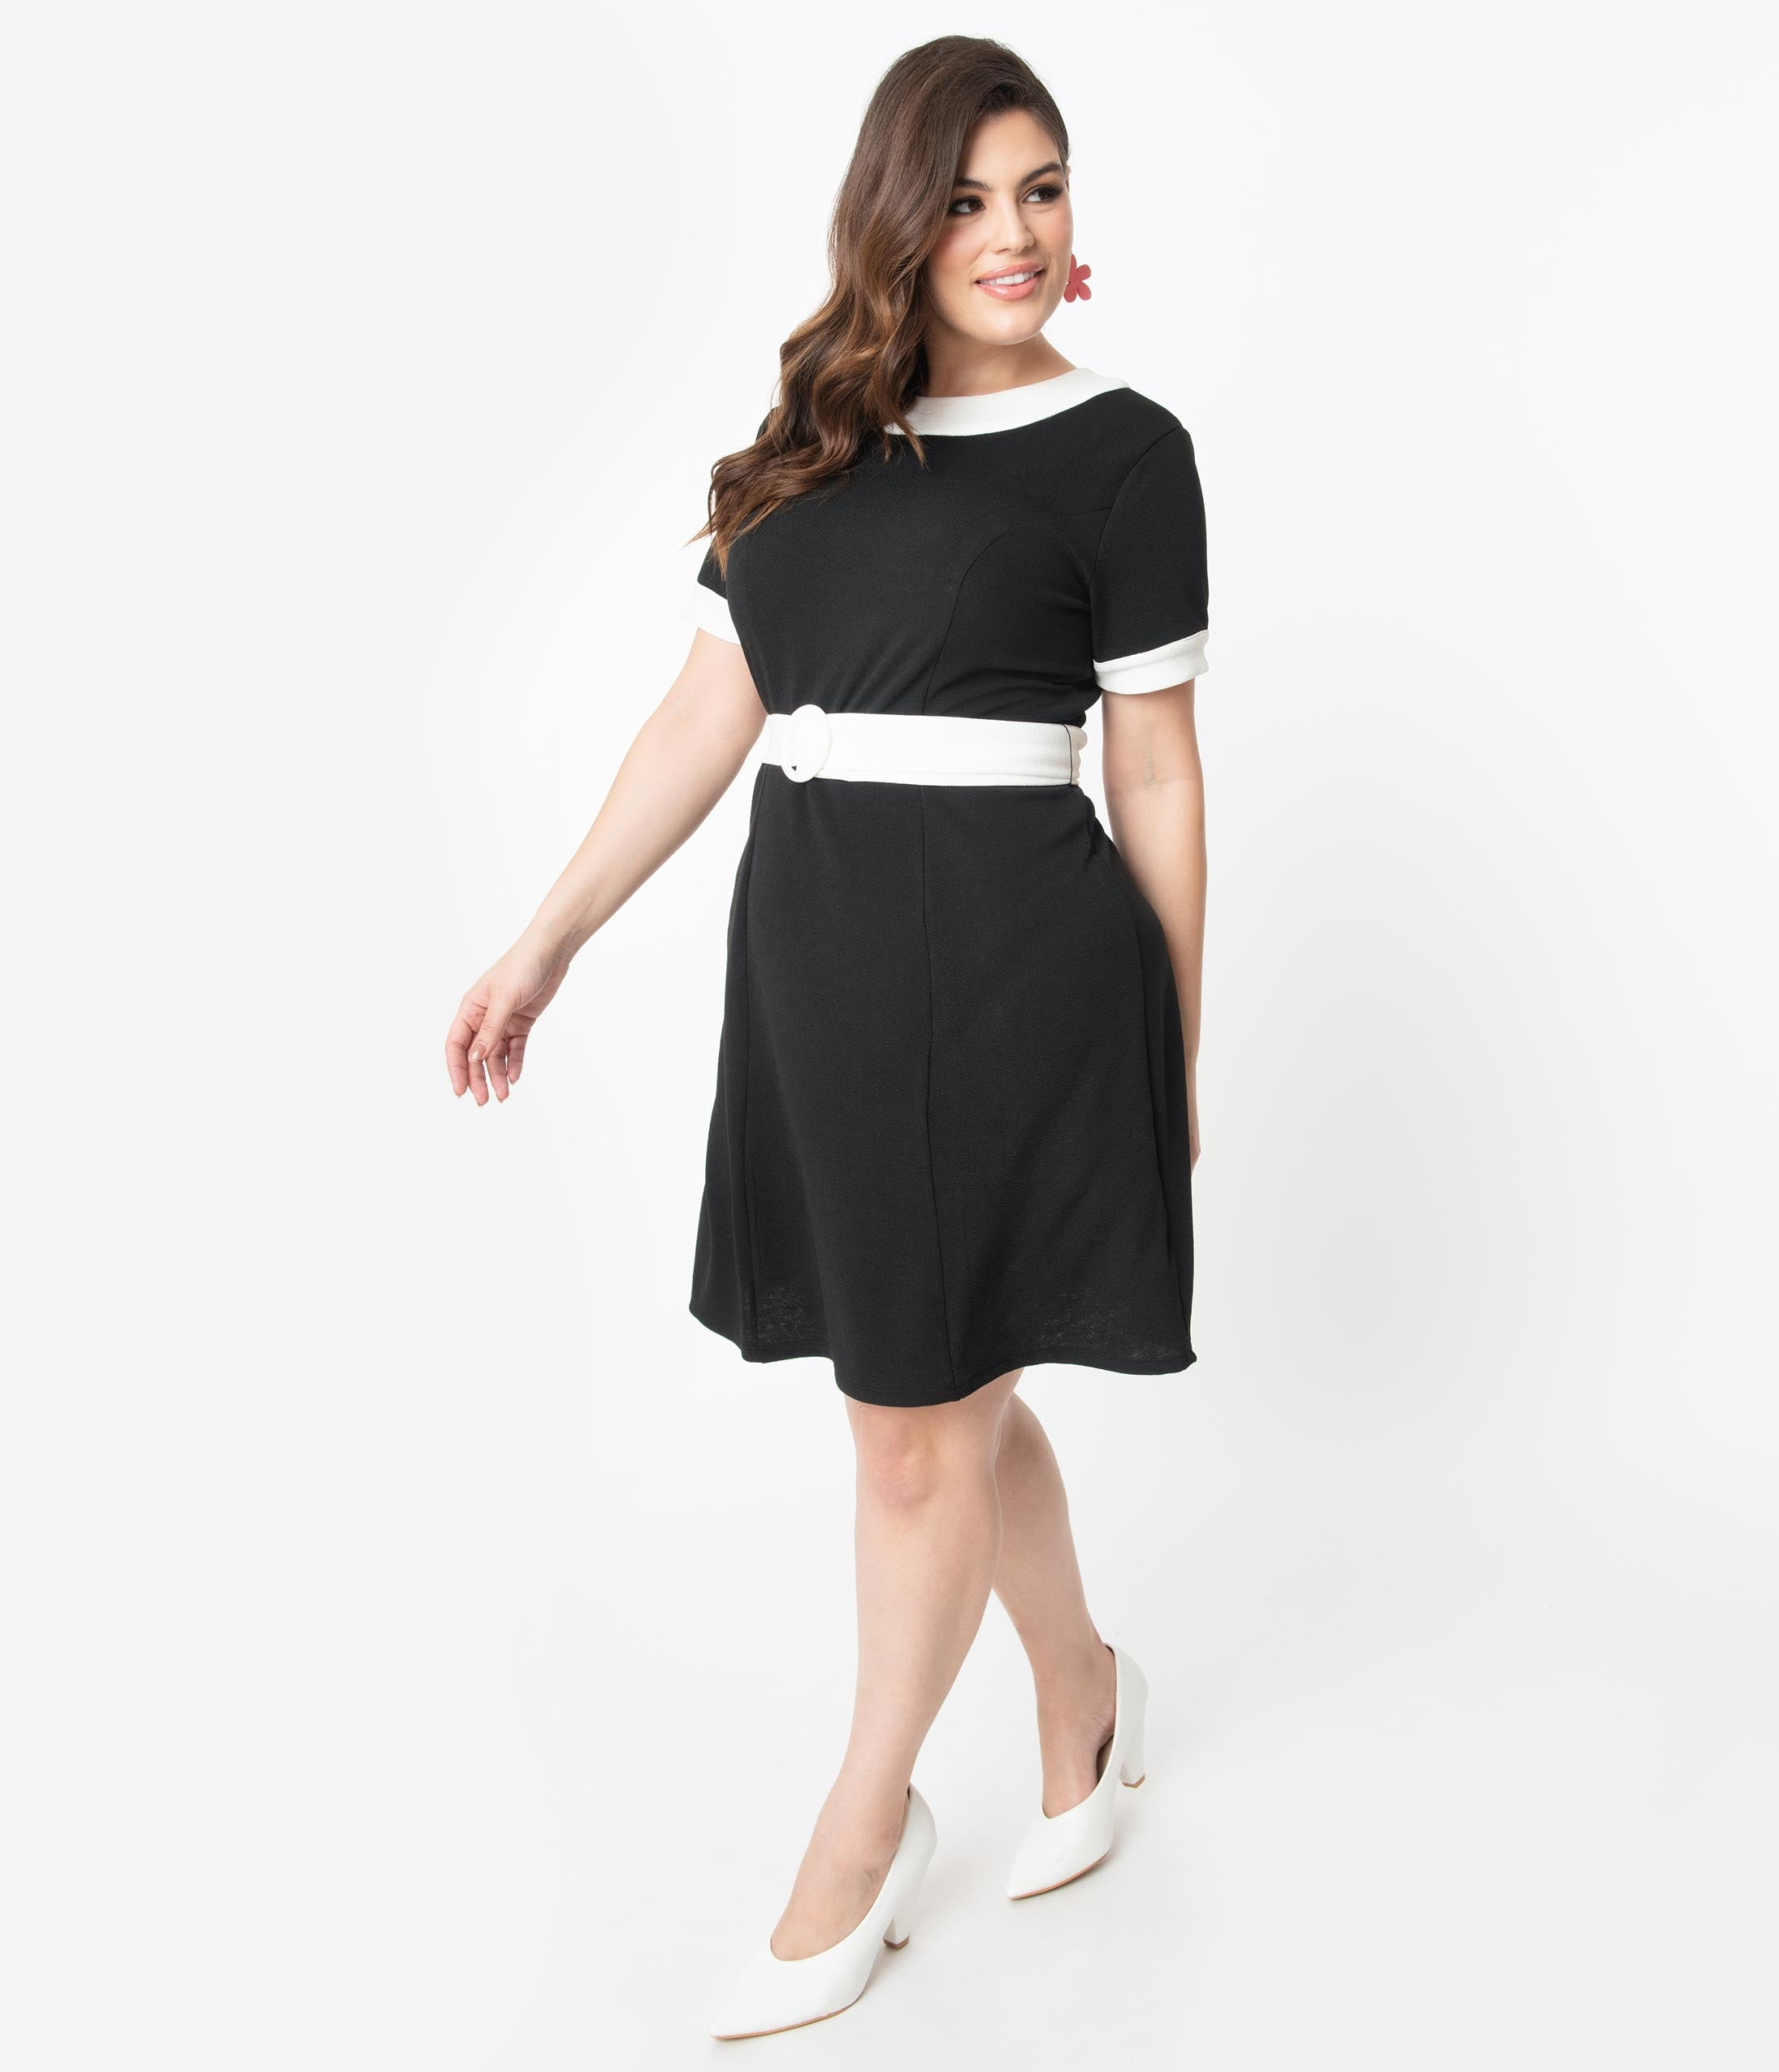 60s 70s Plus Size Dresses, Clothing, Costumes Smak Parlour Plus Size Black  White Belted Show Stealer Dress $58.00 AT vintagedancer.com